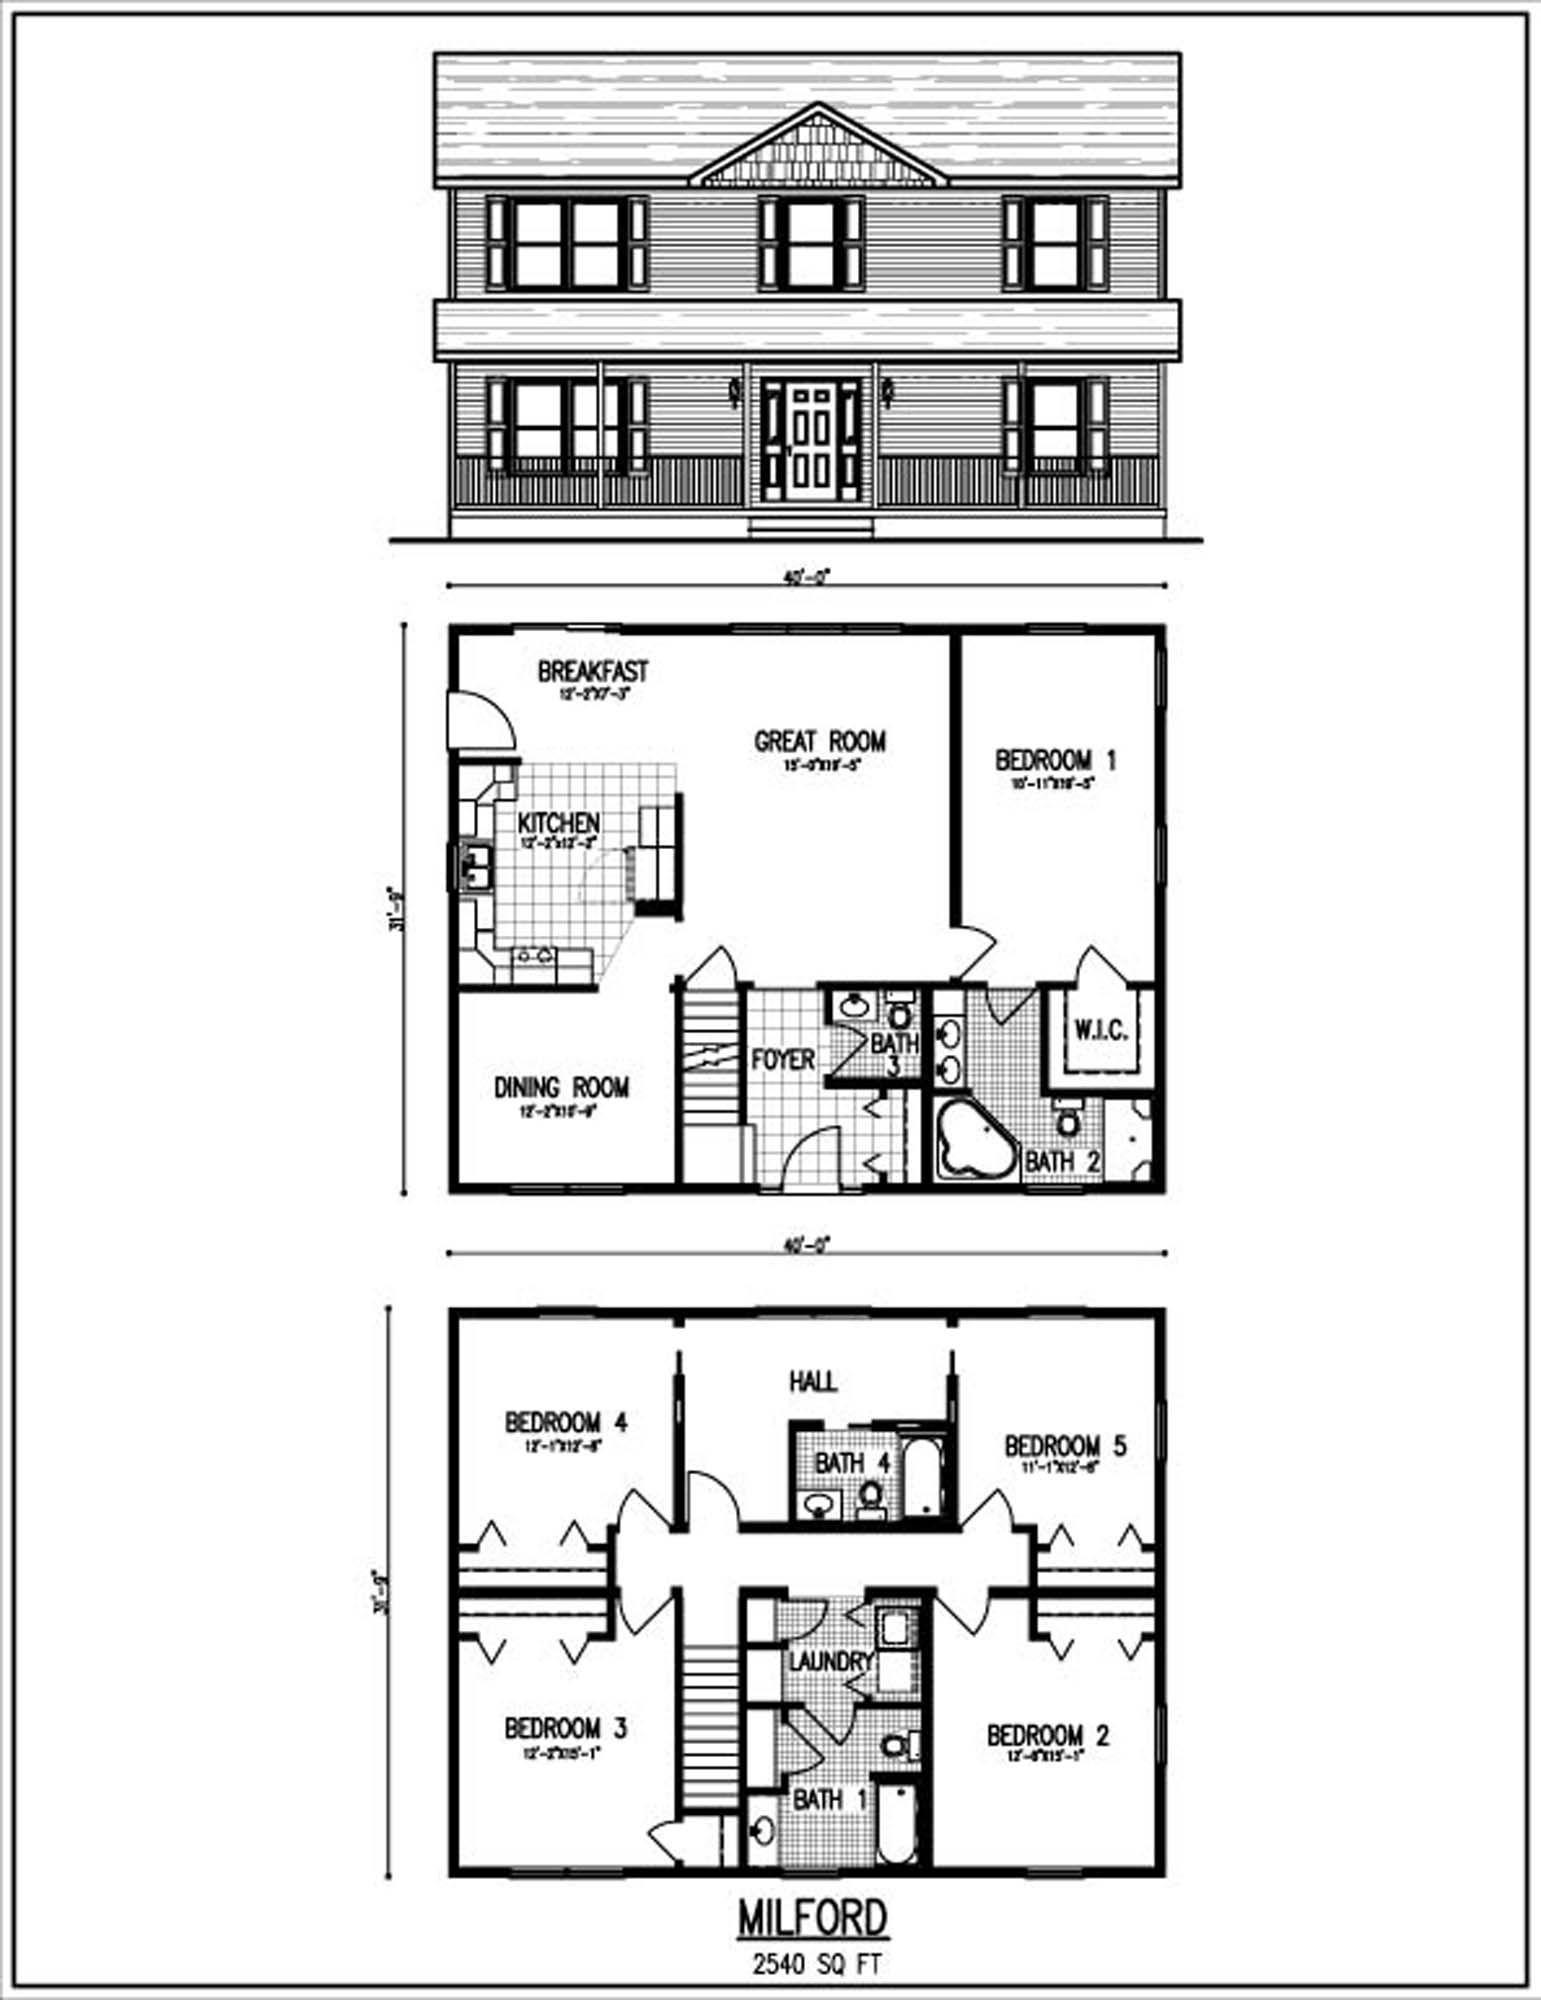 Beautiful 2 story house plans with upper level floor plan for 2 story house layout